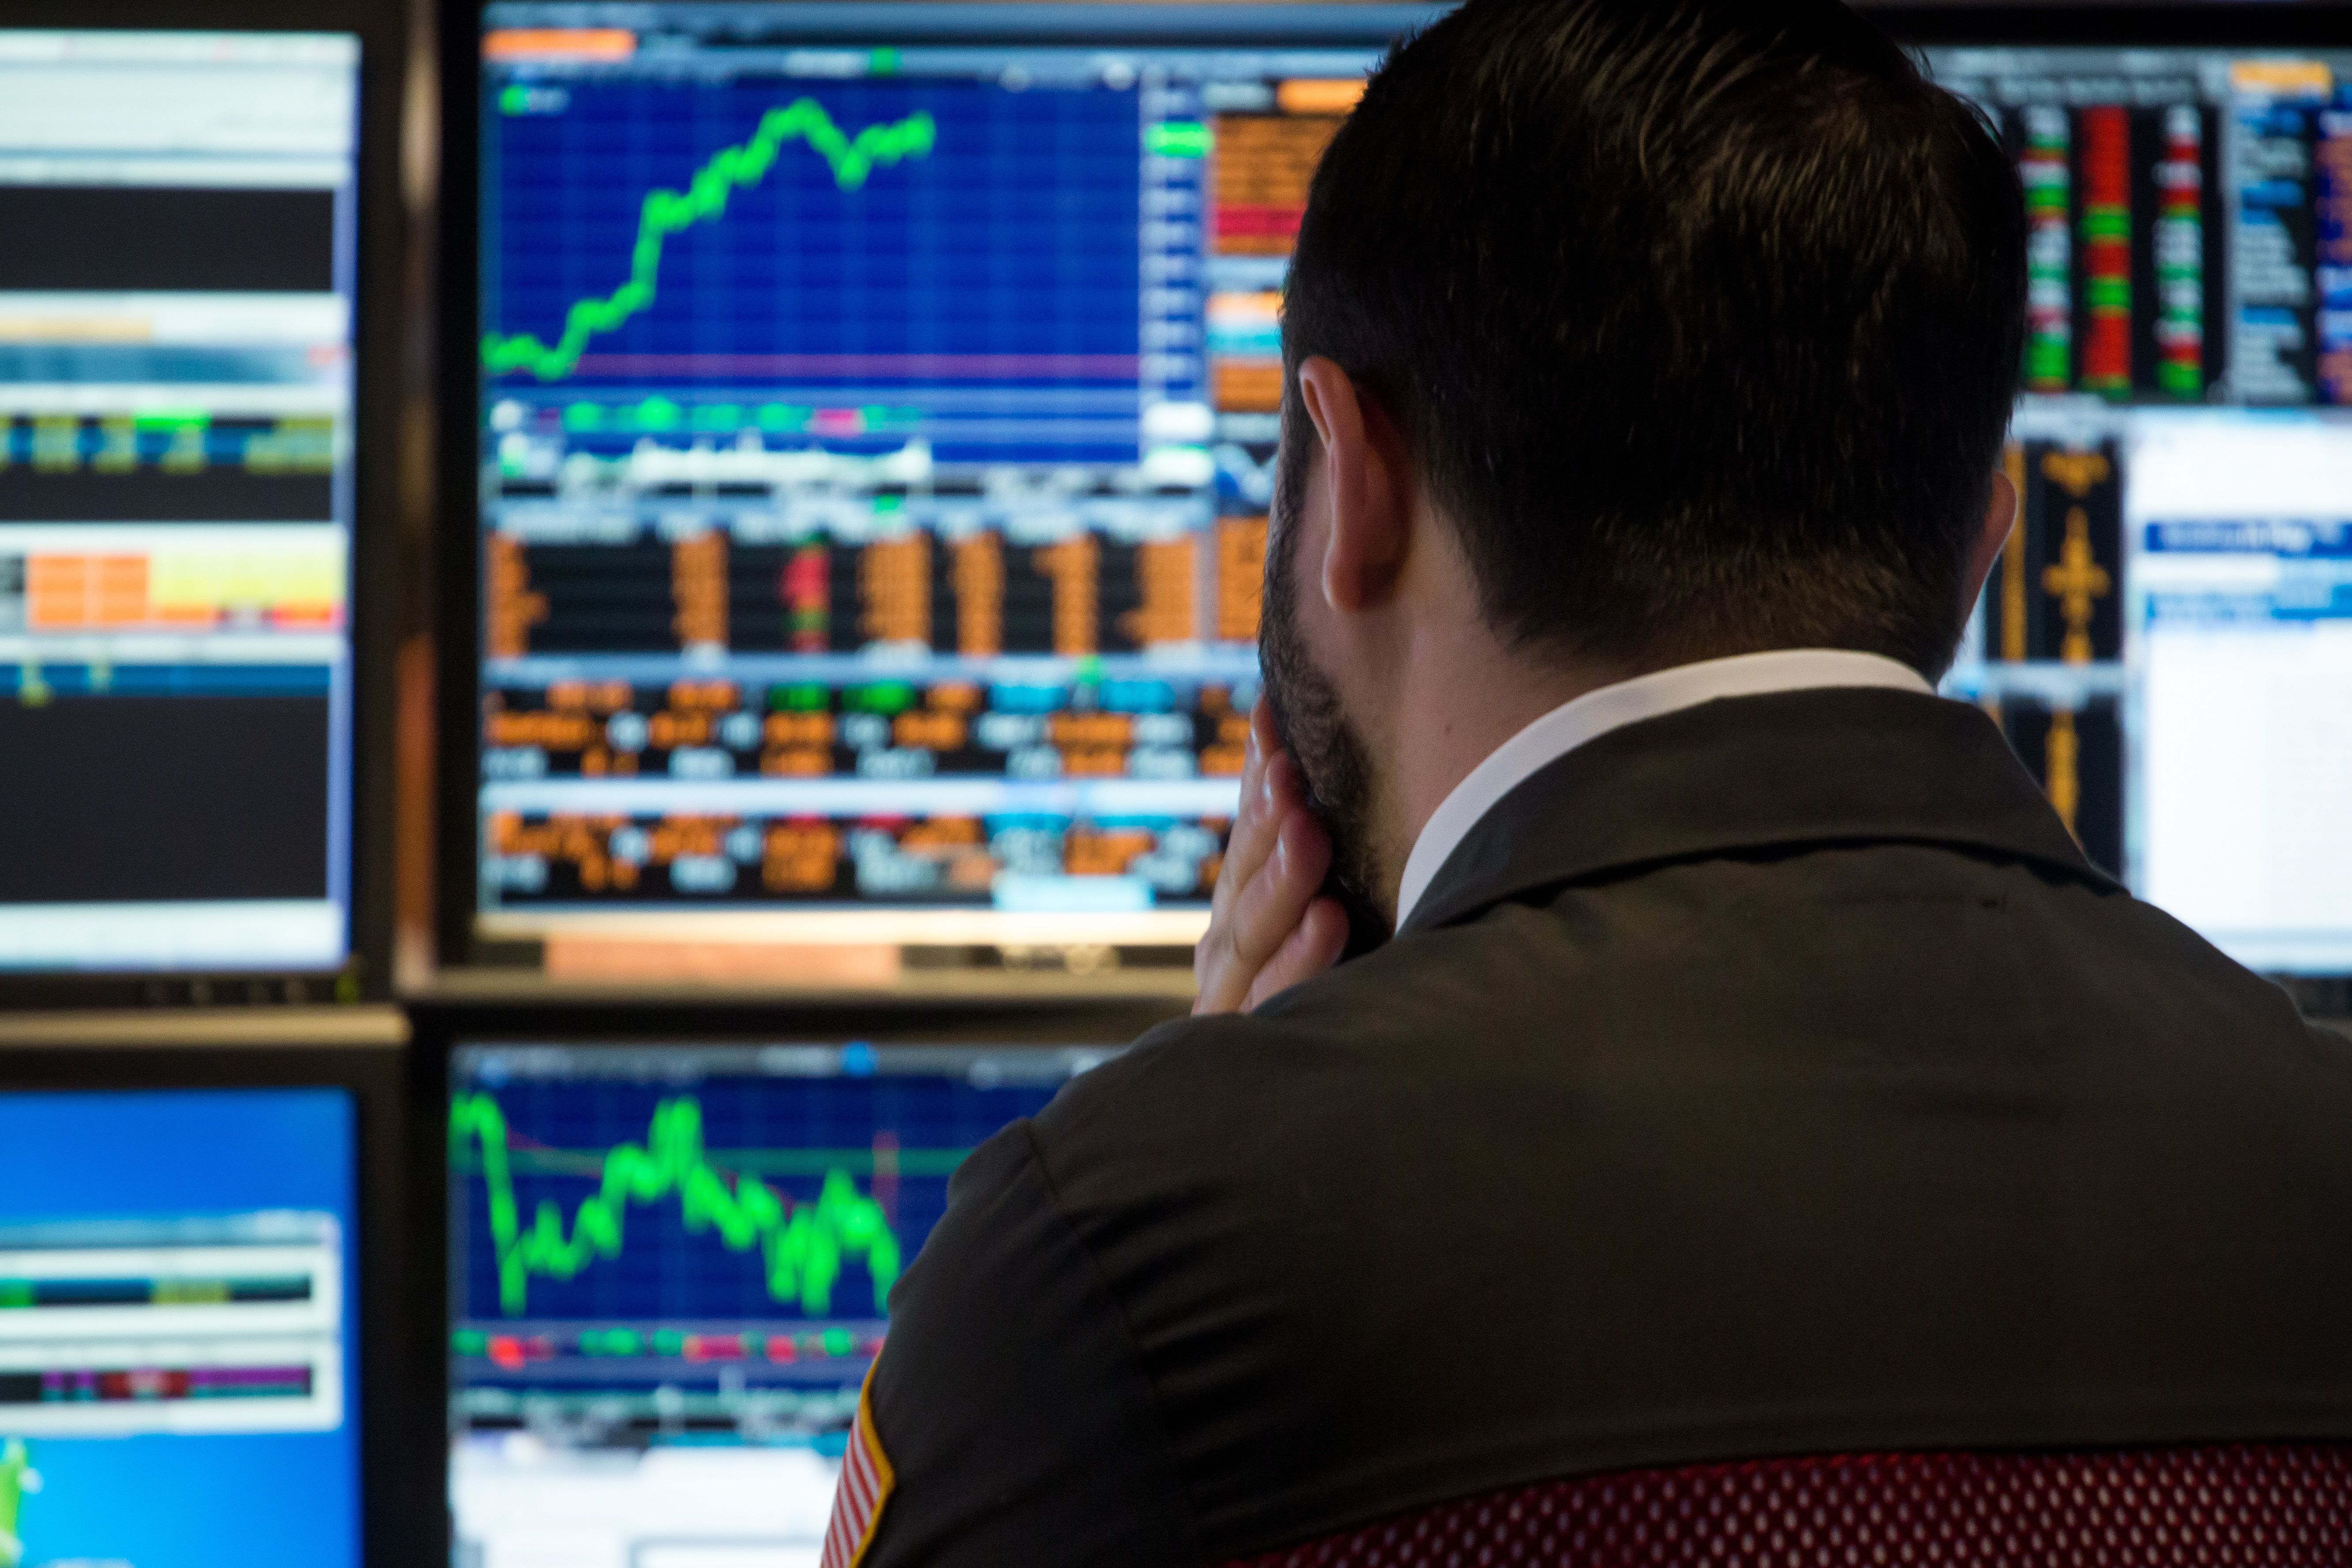 A trader looks at price monitors as he works on the floor at the New York Stock Exchange in New York City, December 4, 2018.